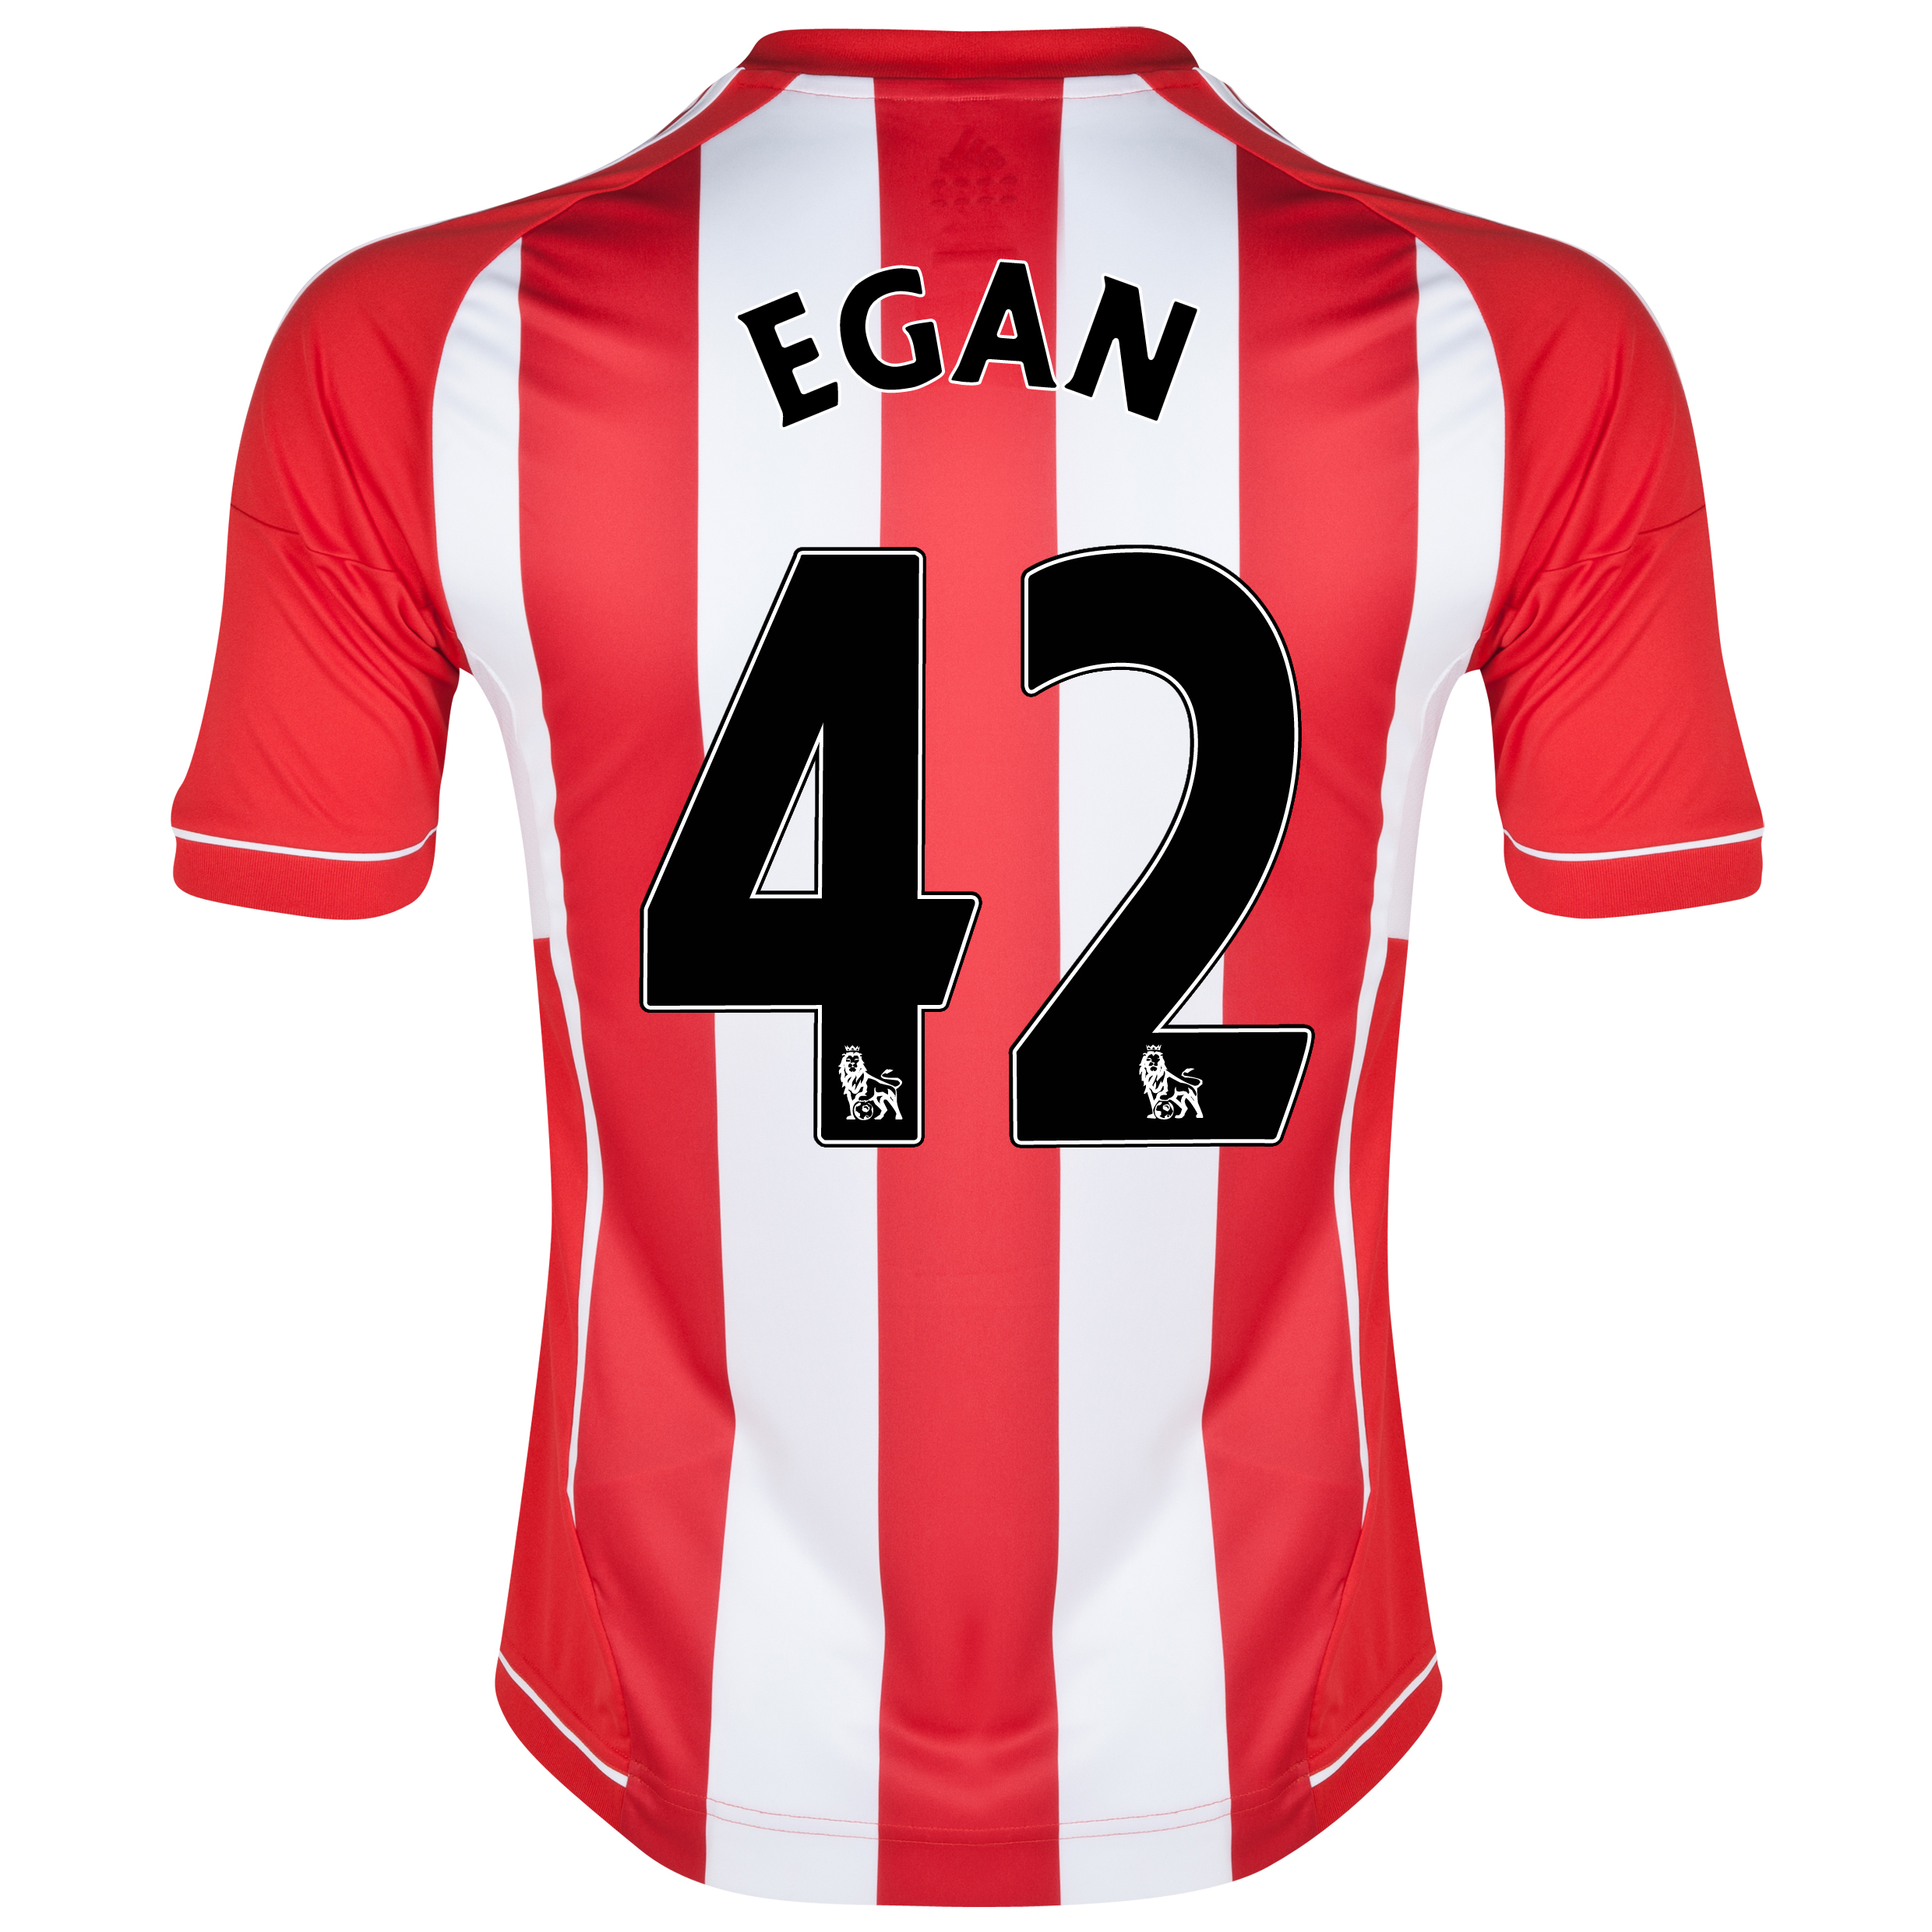 Sunderland Home Shirt 2012/13 with Egan 42 printing